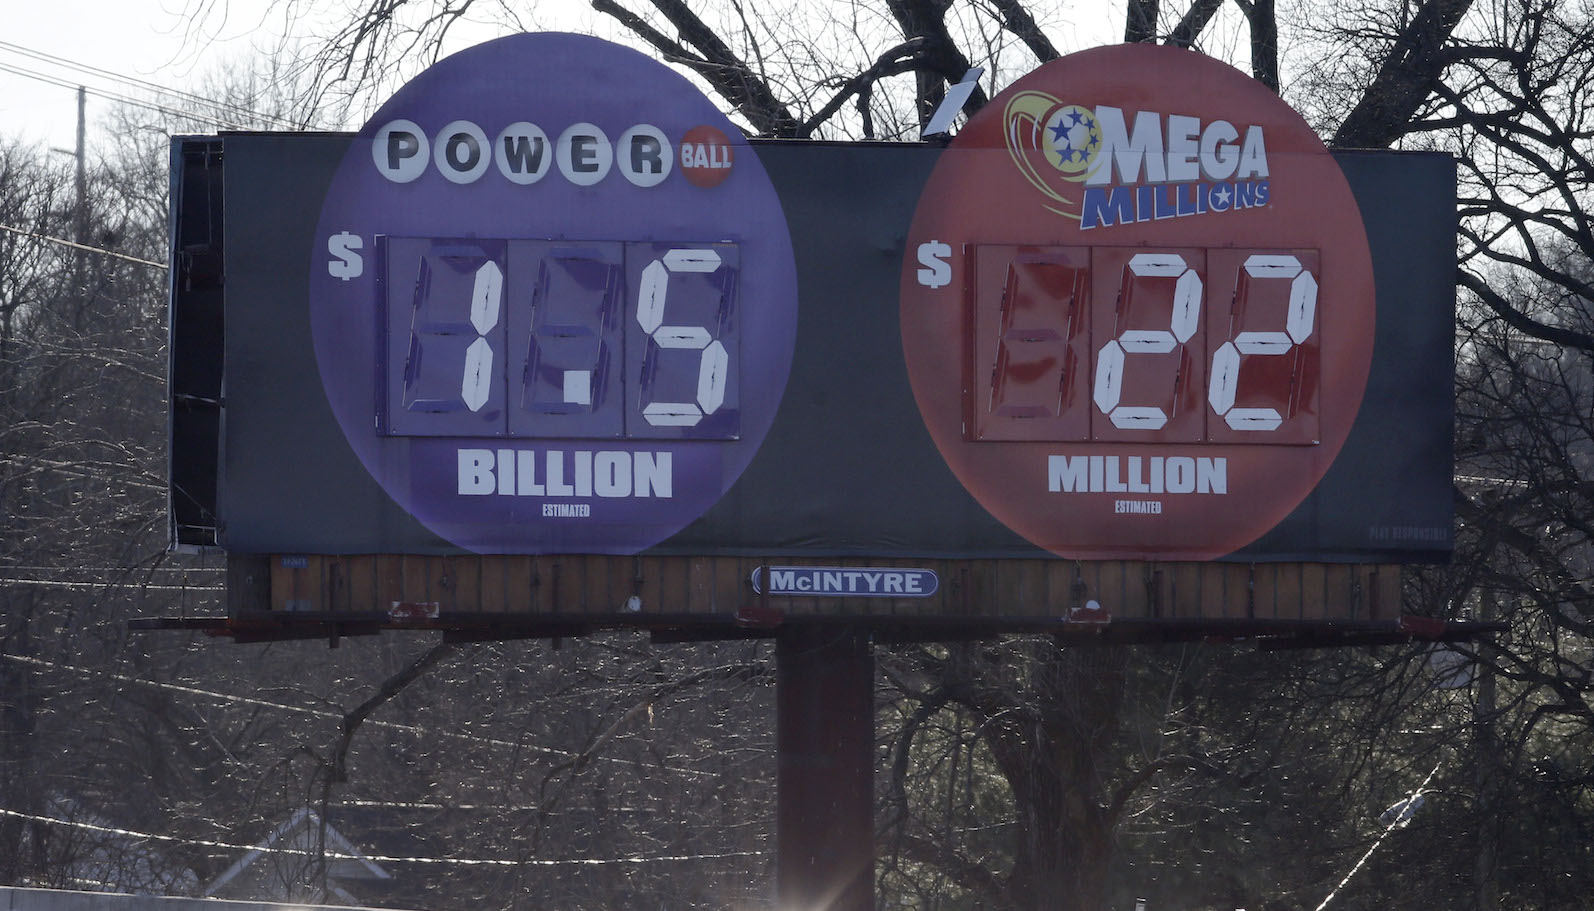 """Drivers pass a billboard where the word """"billion"""" has replaced """"million"""" to show the correct amount of the jackpot for Wednesday night's Powerball drawing on Wednesday, Jan. 13, 2016, in Nashville, Tenn. The top prize, now at more than $1 billion, is the largest lottery jackpot in the world. (AP Photo/Mark Humphrey)"""